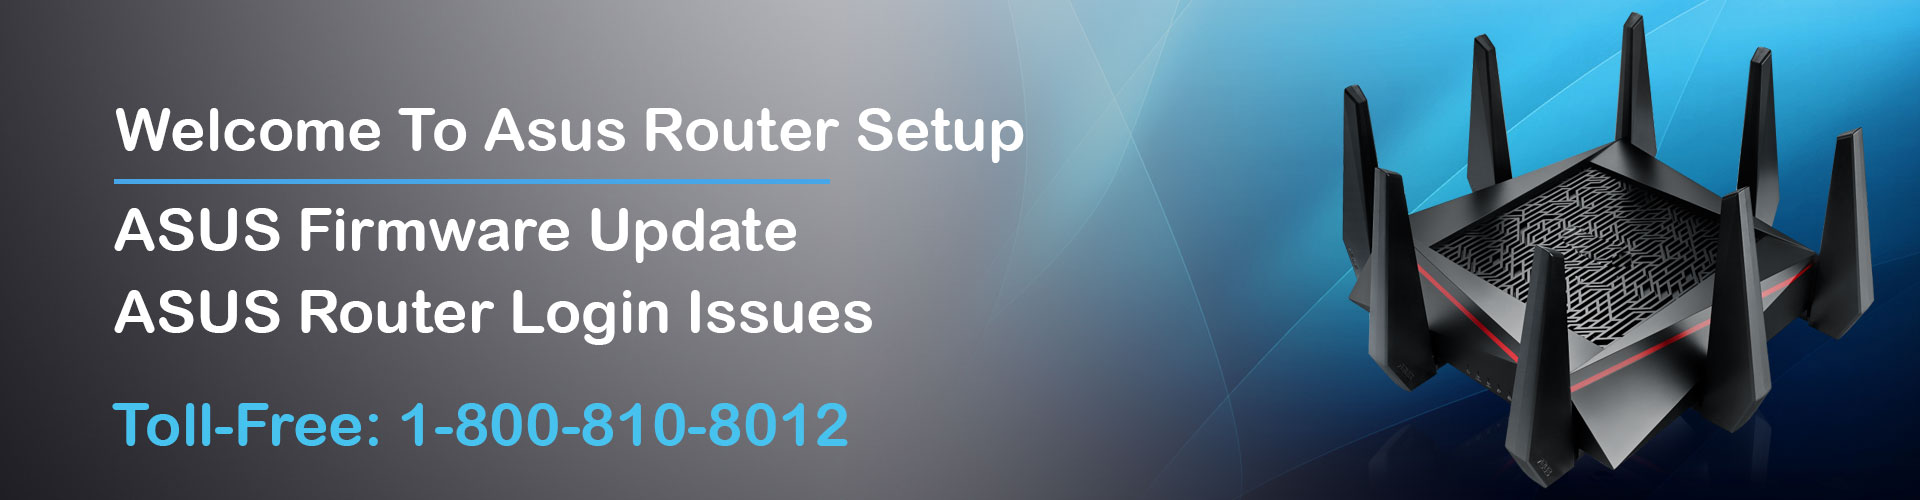 Asus router firmware update | How to update Asus router's firmware